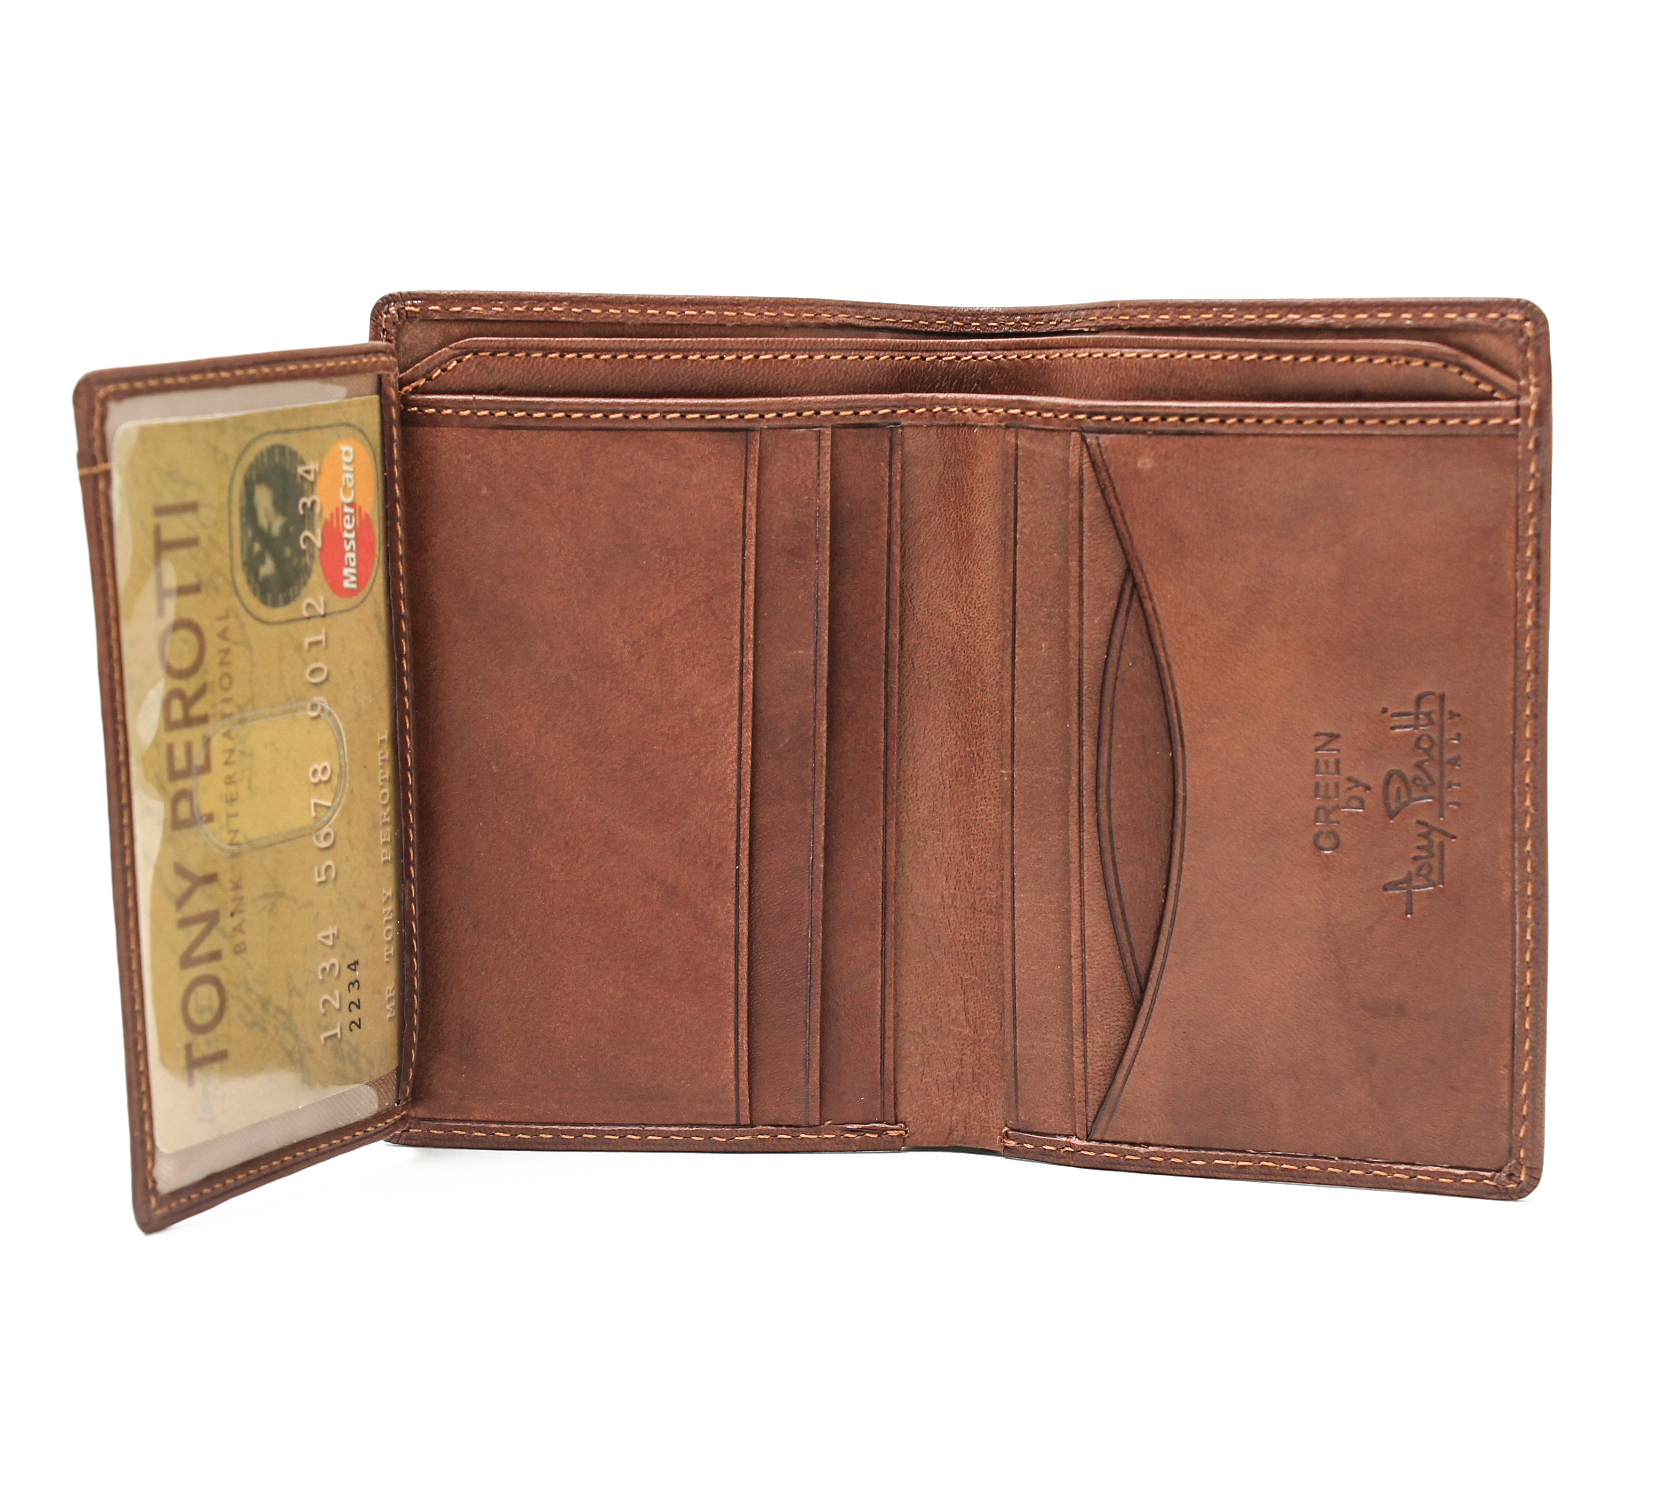 Tony Perotti Italian Leather Front Pocket Vertical Bifold